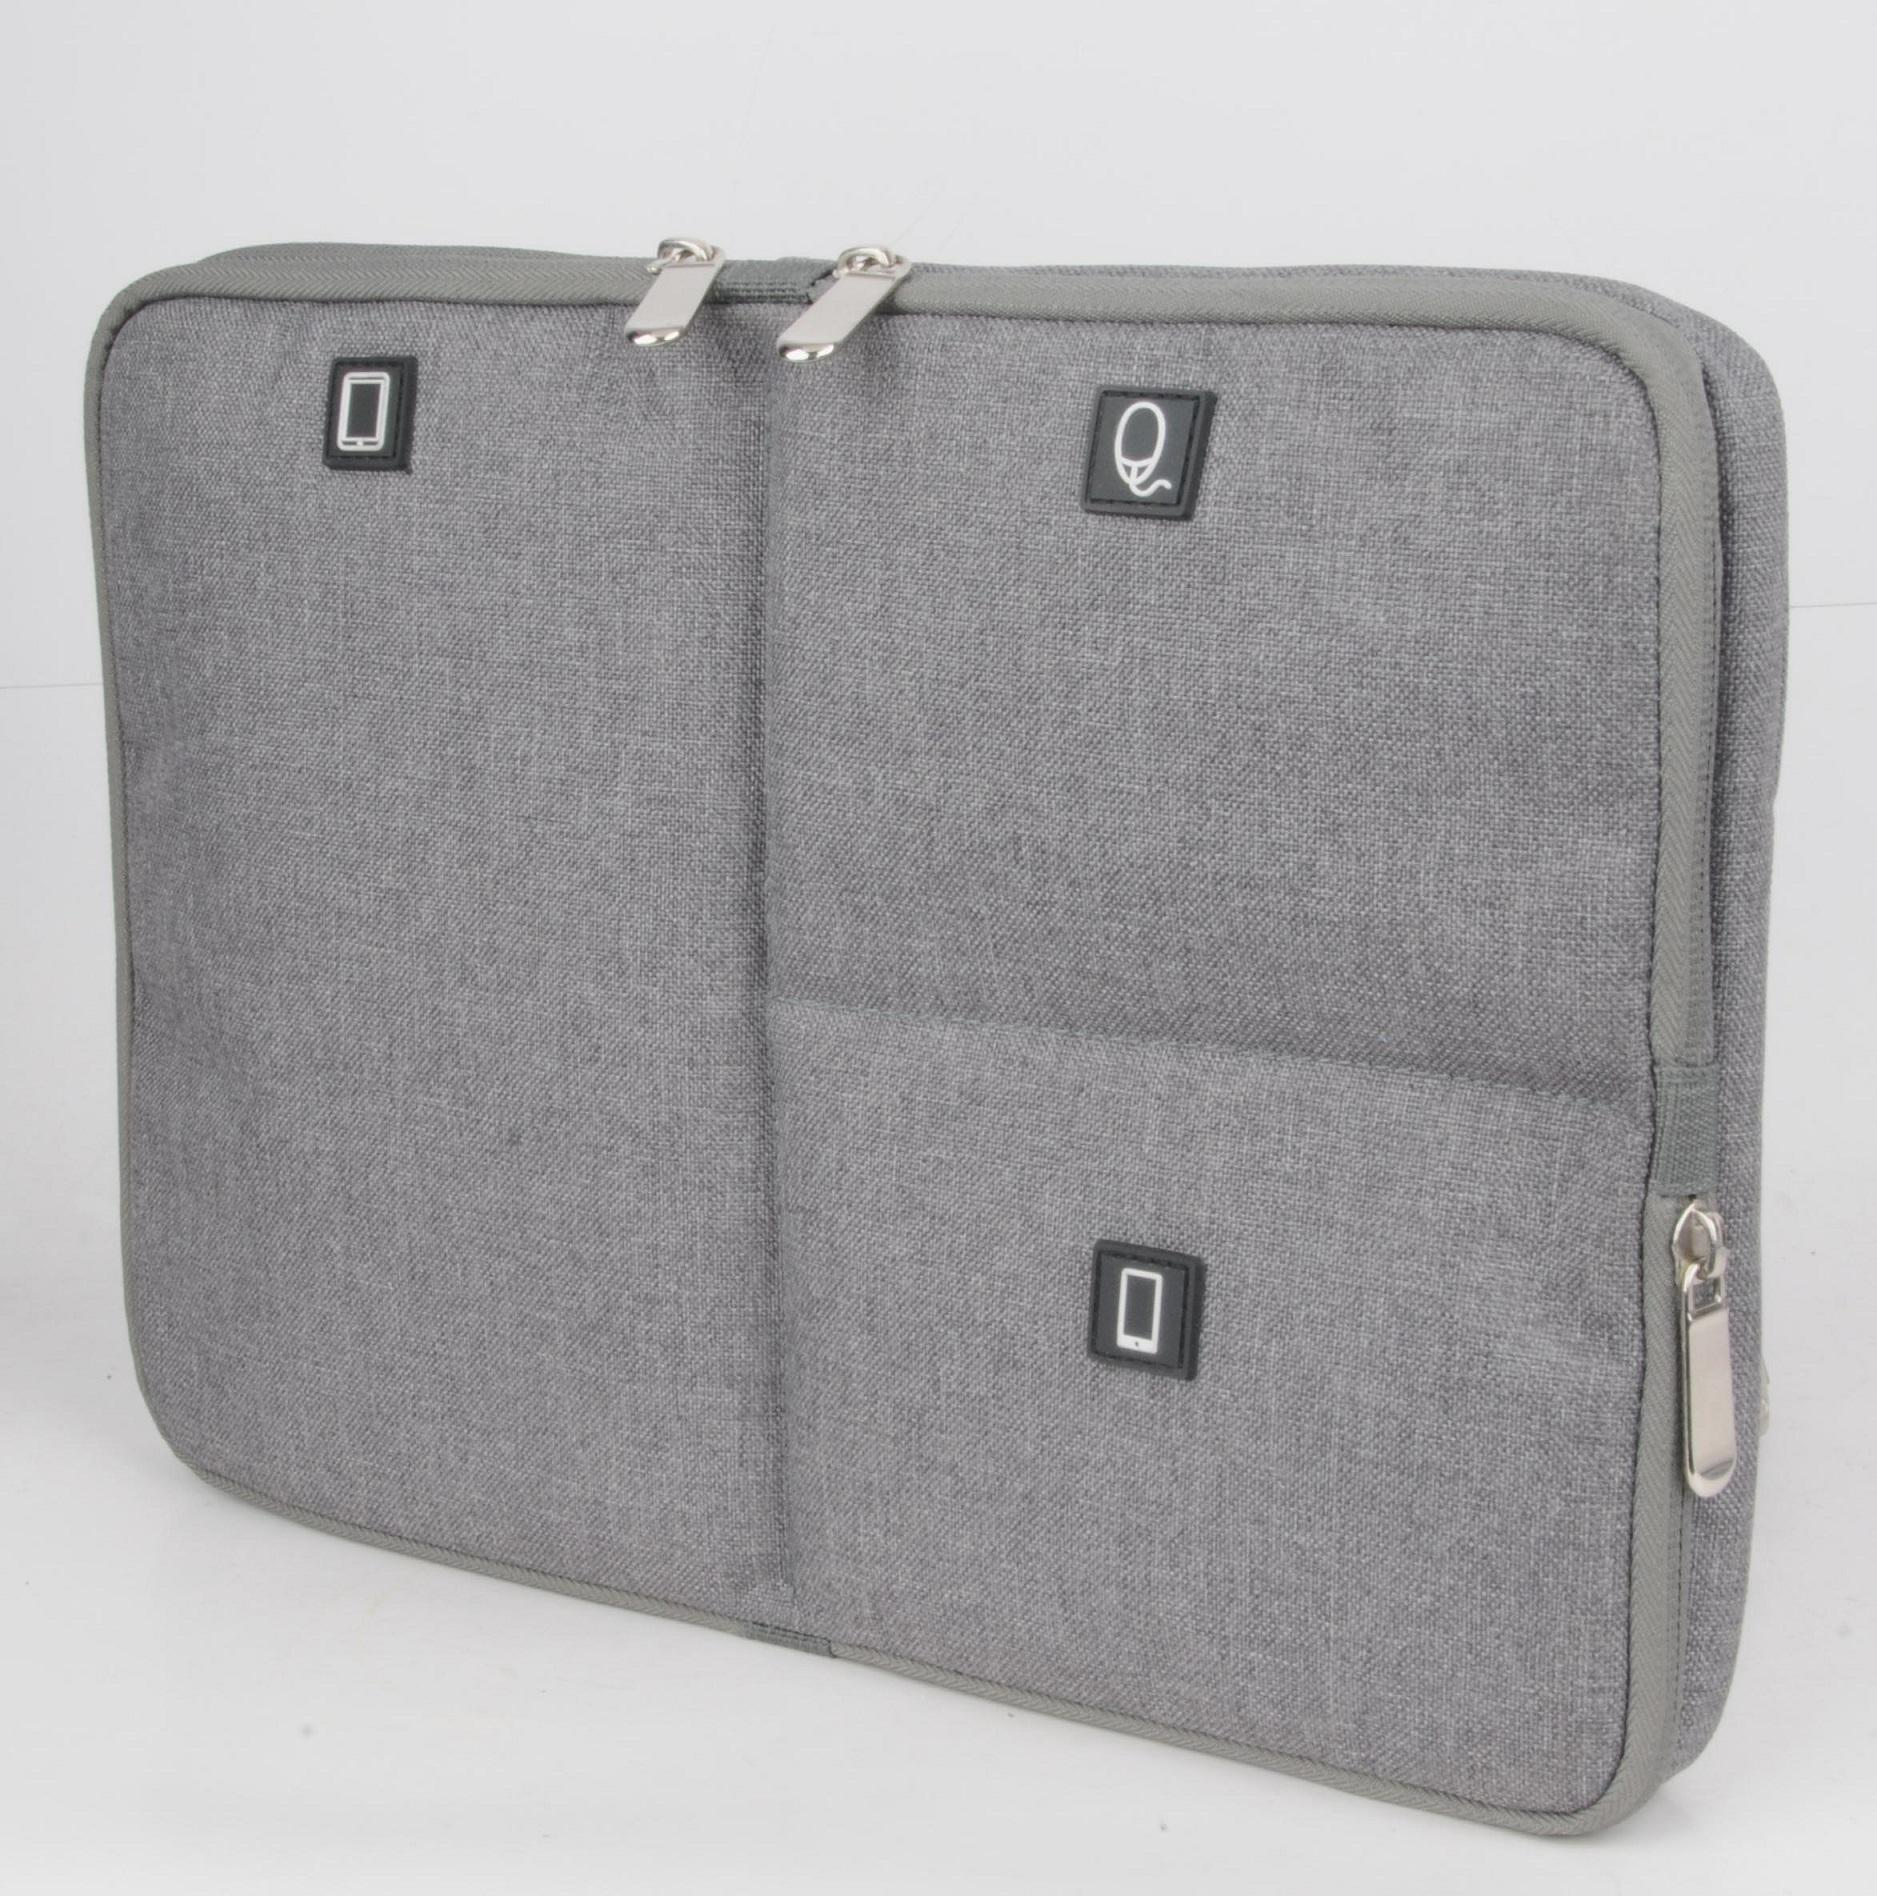 Techwaves 13.3-inch Multifunctional Laptop Sleeve, Water Resistant, Shock Resistant, for MacBook, MacBook Air, MacBook Pro, HP, Dell, Lenovo, Acer, ASUS, Toshiba, Notebook Chromebook Protective Carrying Case, Grey